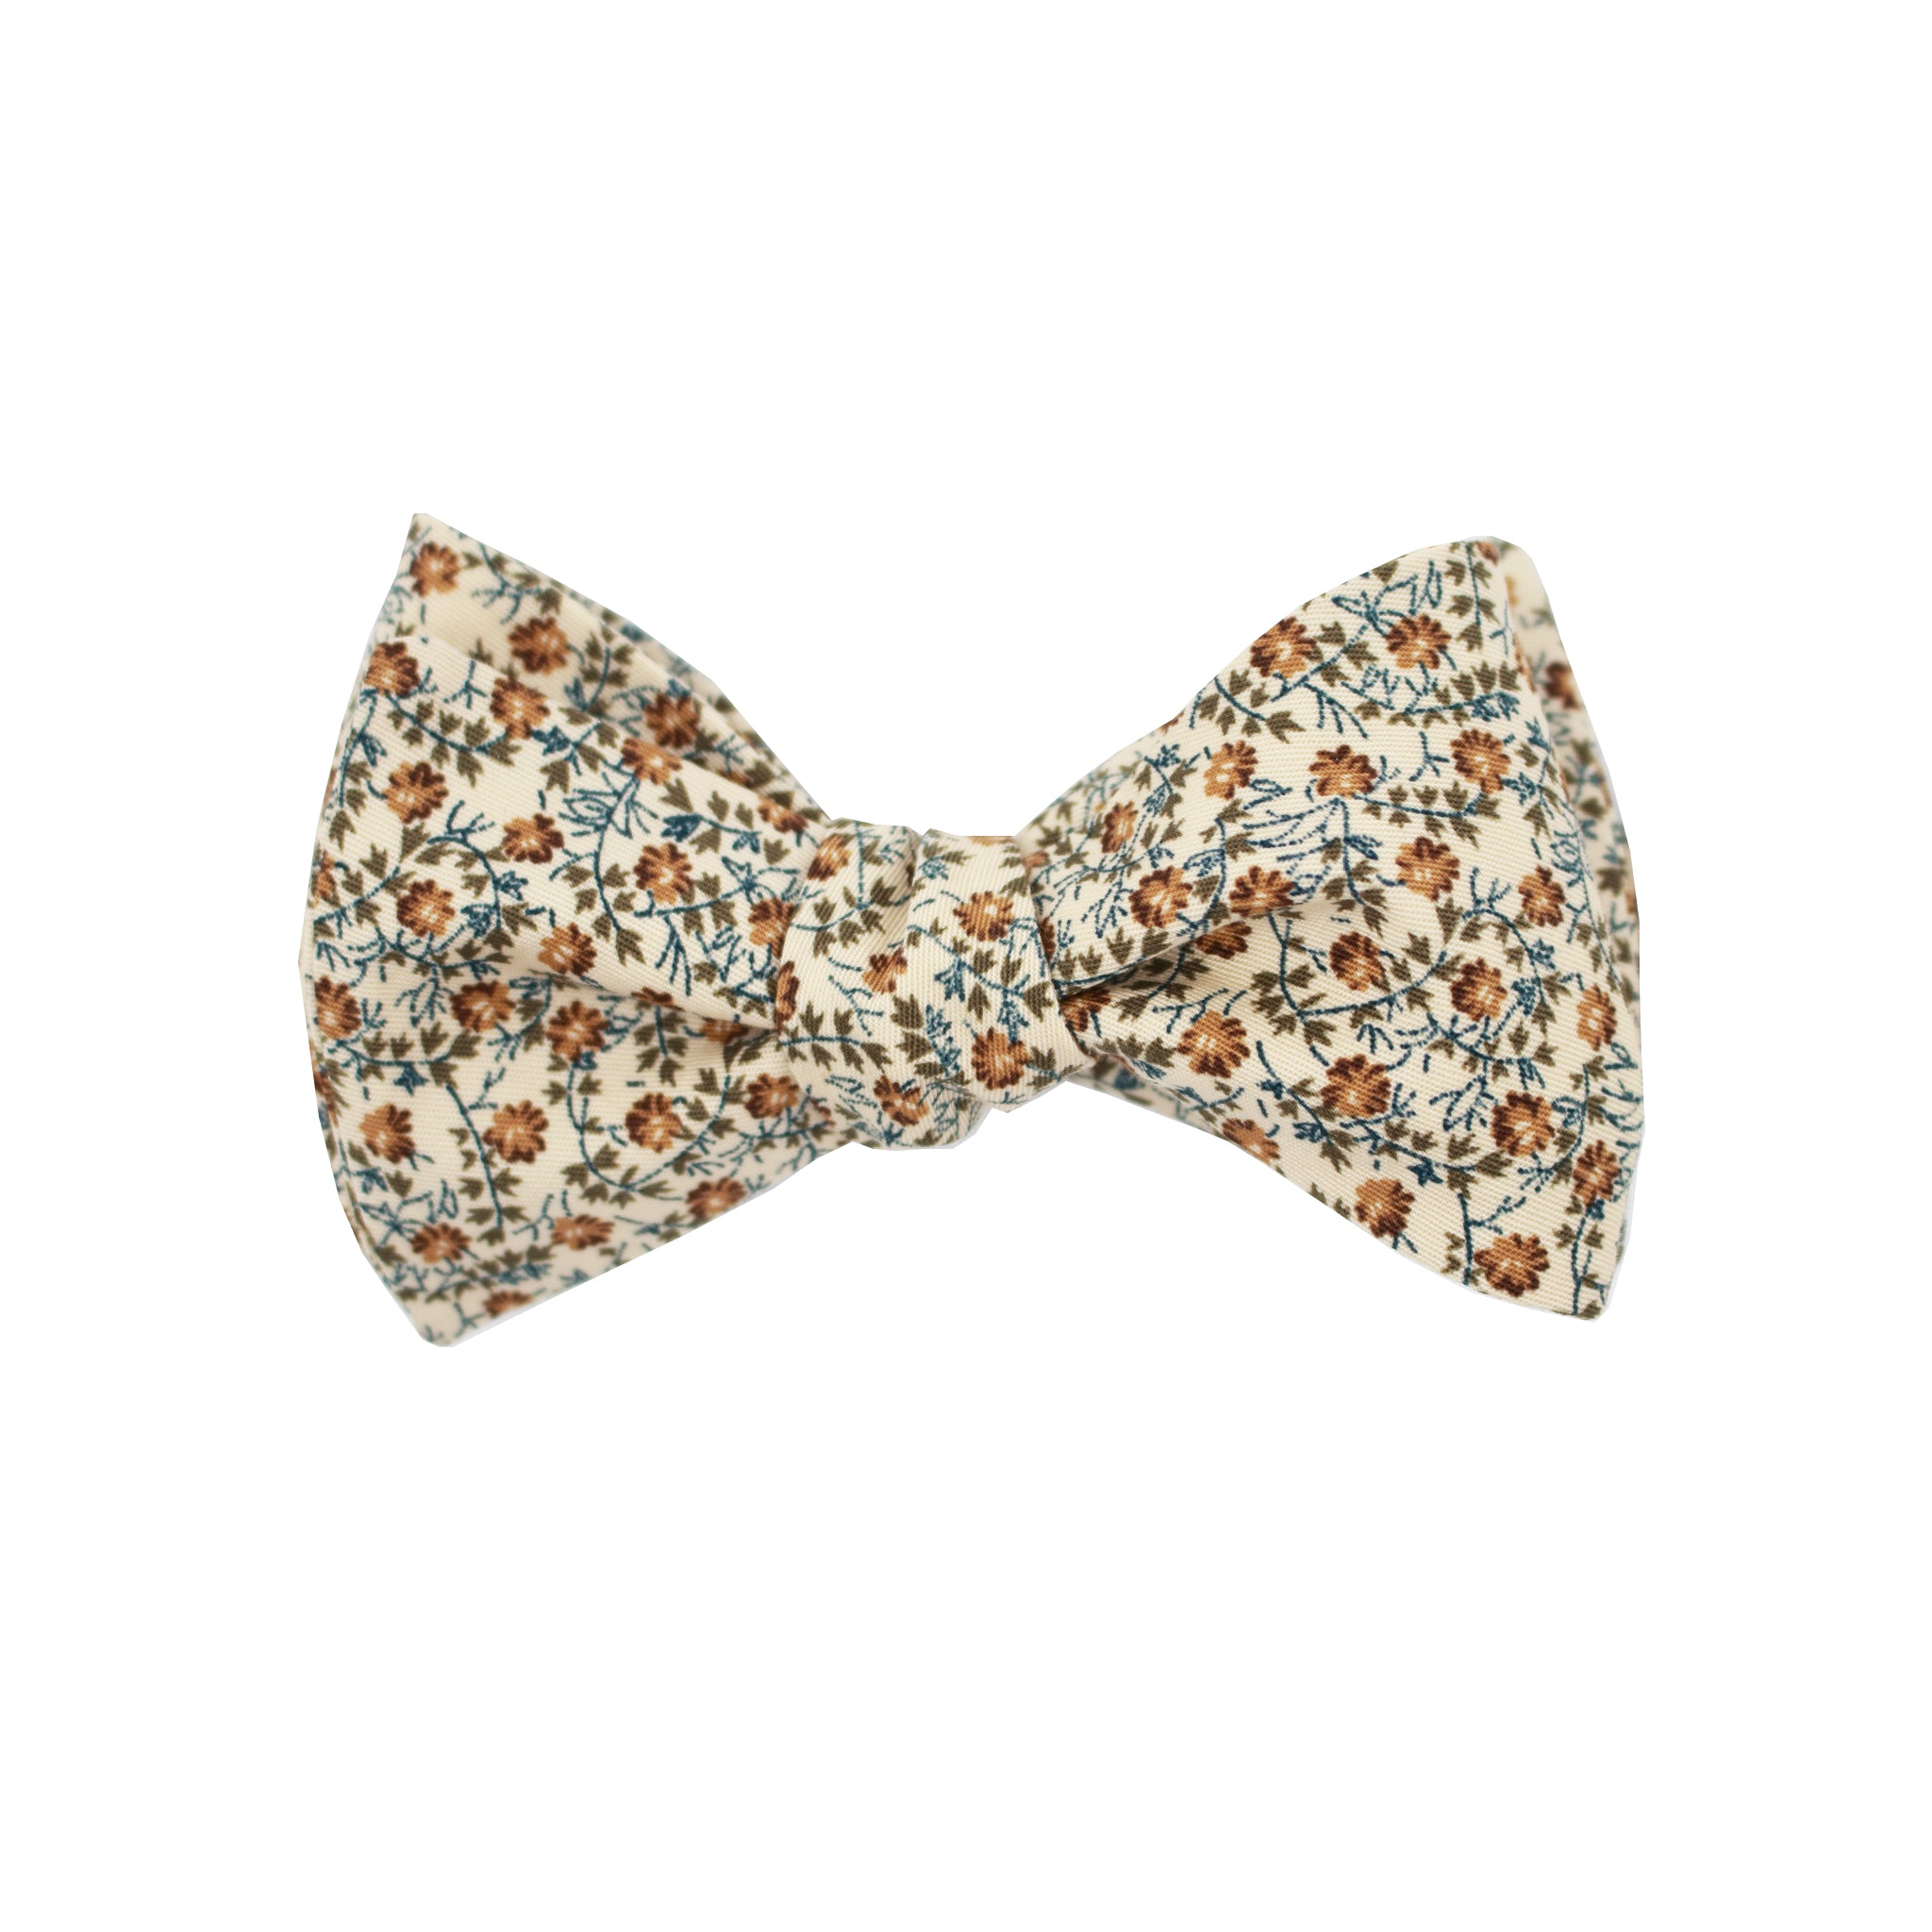 Beige & Brown Multi Floral Self Tie Bow Tie